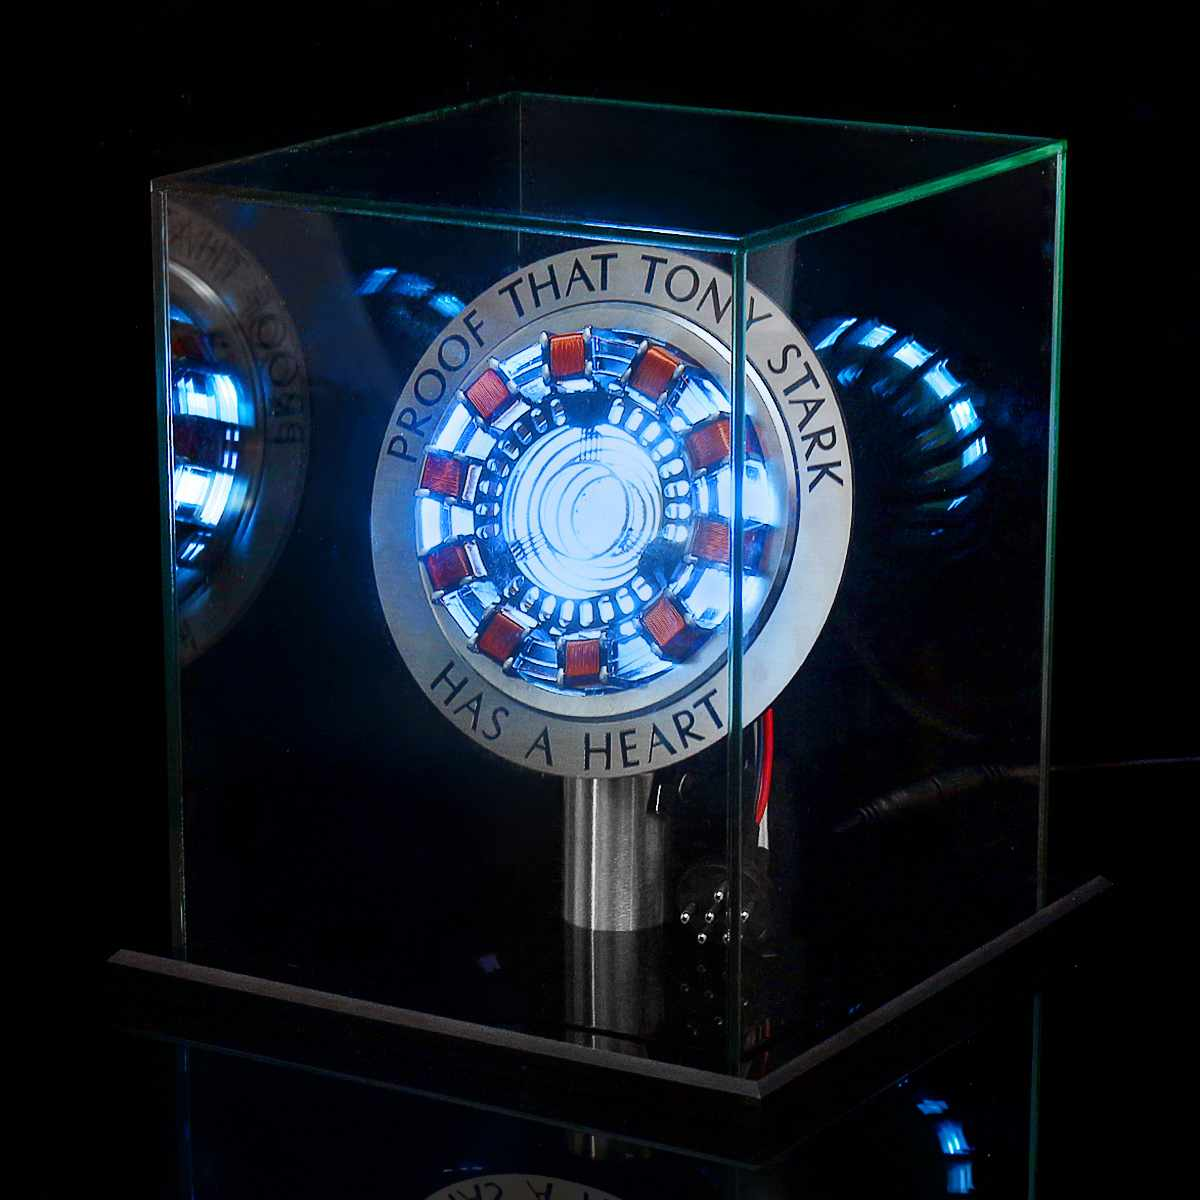 MK1 Aluminum Alloy/Acrylic Tony 1:1 Arc Reactor DIY Model Kit LED Chest Lamp USB Movie Props Gifts Science ToyMK1 Aluminum Alloy/Acrylic Tony 1:1 Arc Reactor DIY Model Kit LED Chest Lamp USB Movie Props Gifts Science Toy